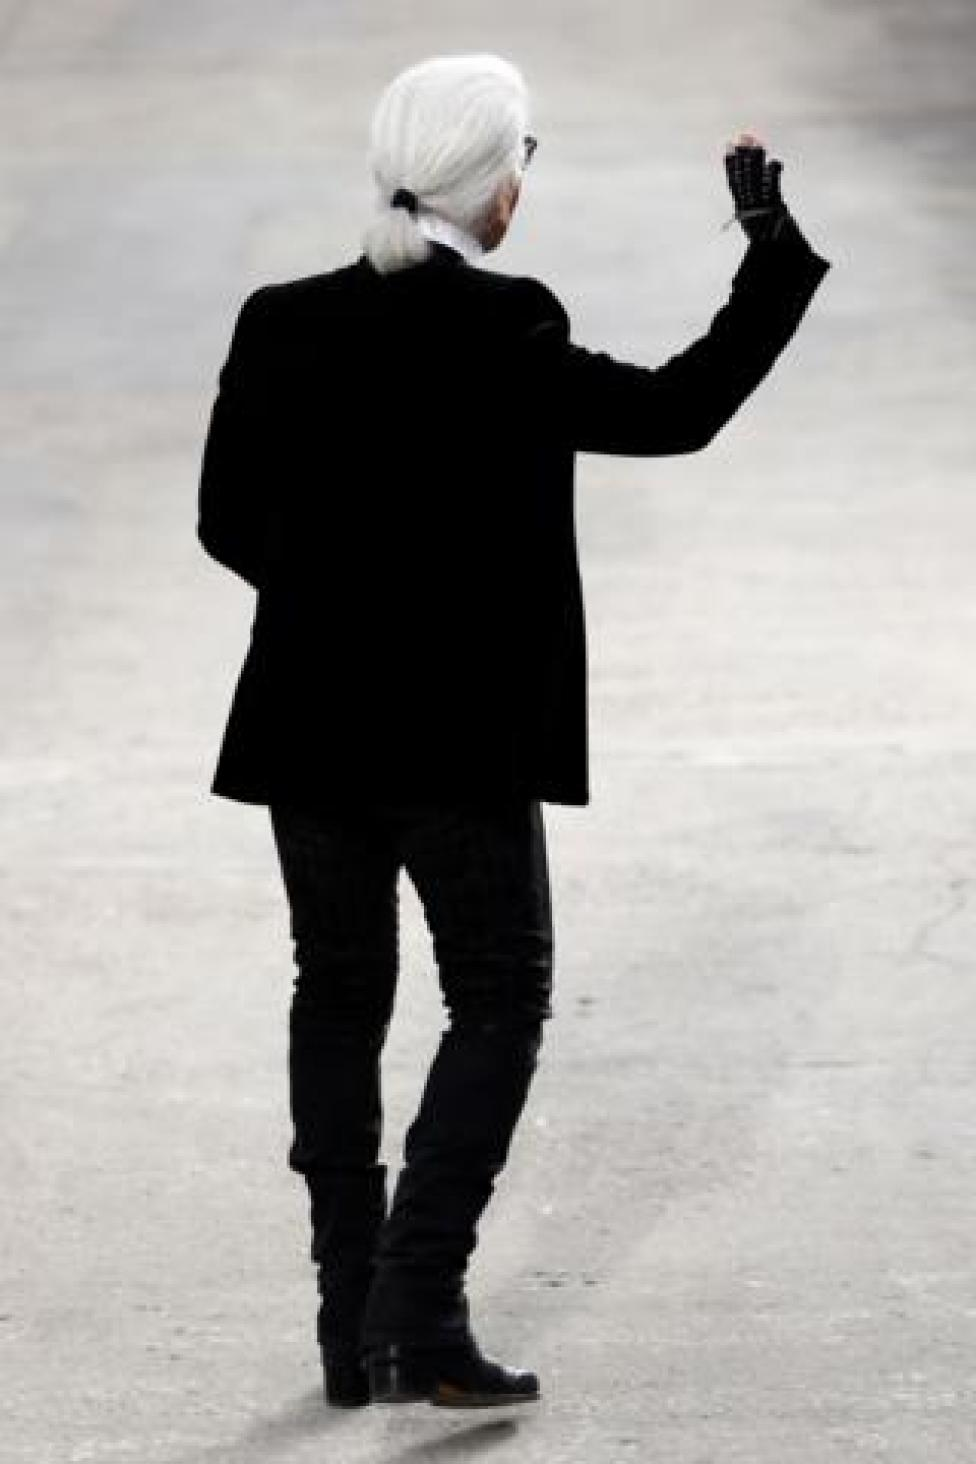 German fashion designer Karl Lagerfeld for Chanel acknowledges the public at the end of his 2014 Spring/Summer ready-to-wear collection fashion show at the Grand Palais in Paris.